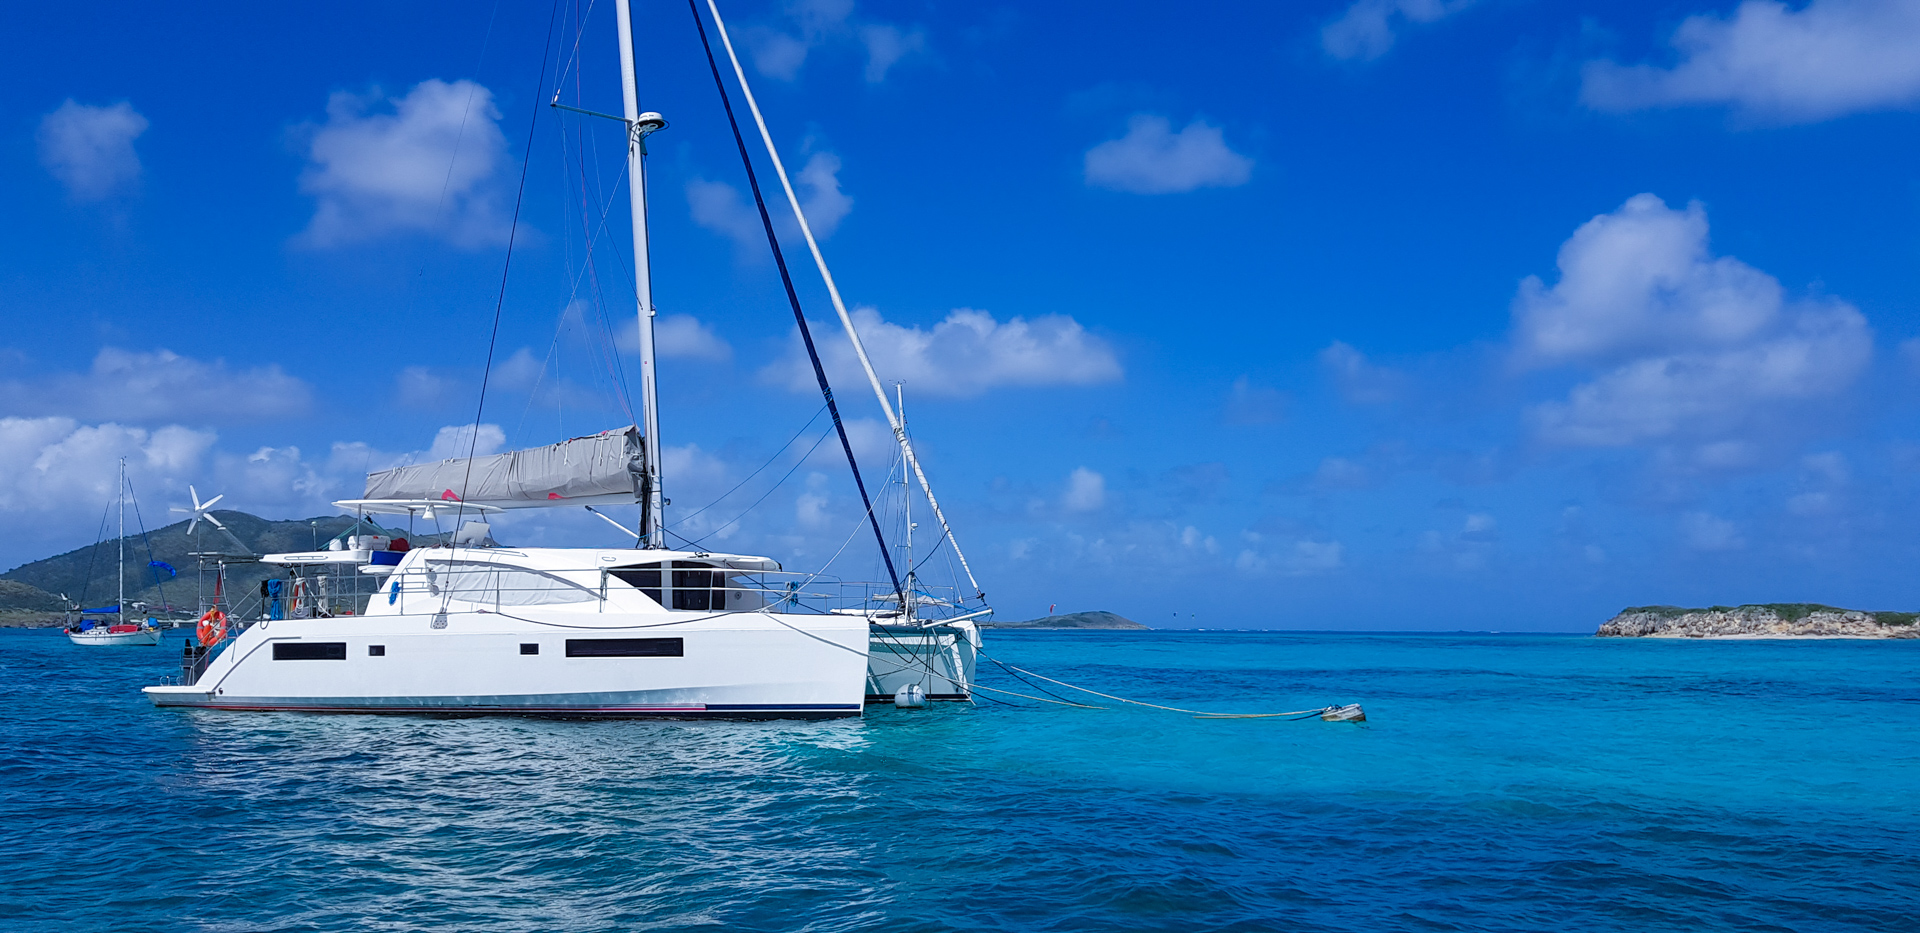 https://www.residence-adam-eve.com/wp-content/uploads/2020/02/slider-image-for-the-catamaran-the-good-life-page.jpg